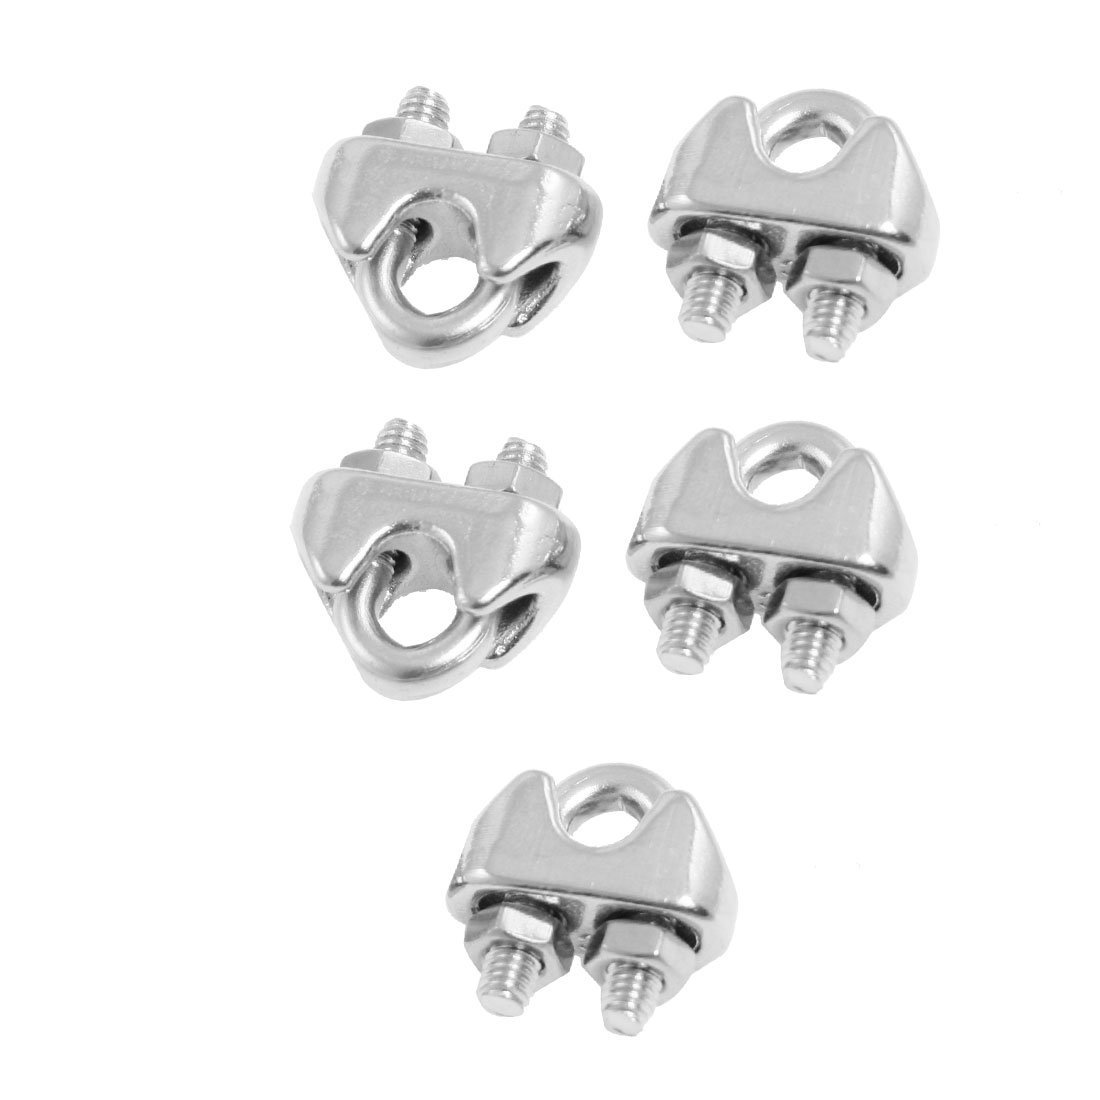 5 Pcs 304 Stainless Steel Saddle Clamp Cable Clip for 3/25\